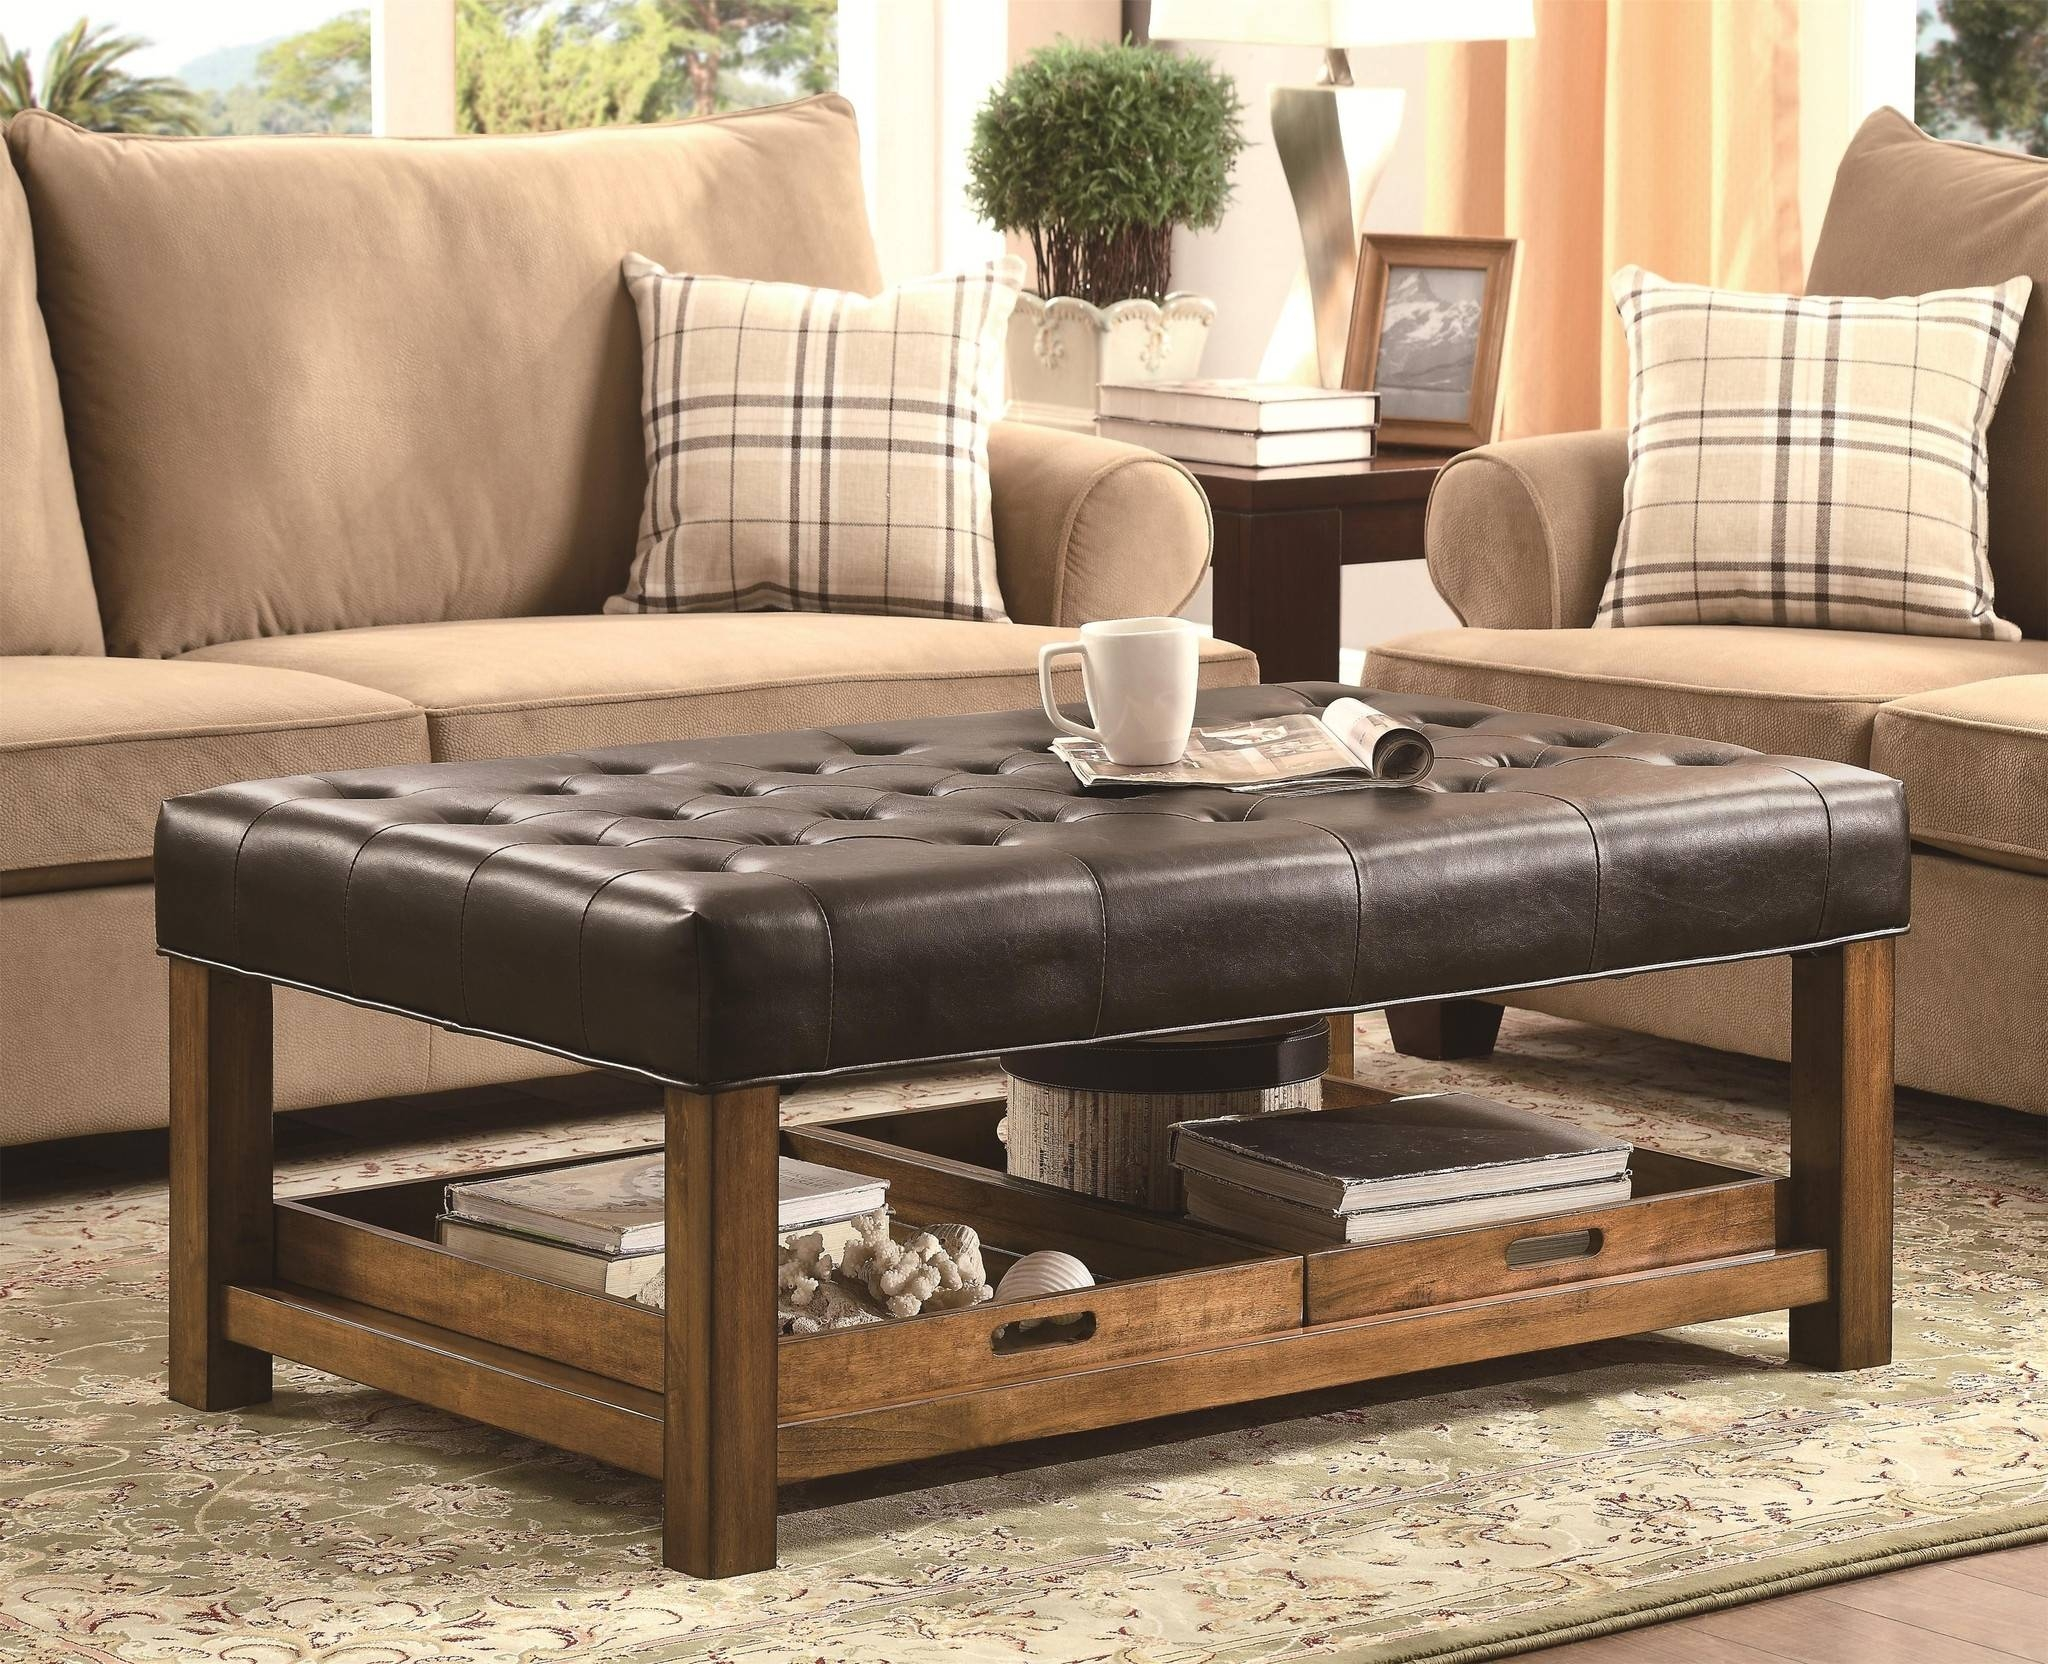 Beautiful Leather Ottoman Coffee Table Furniture For Coffee Table in Brown Leather Ottoman Coffee Tables (Image 8 of 30)